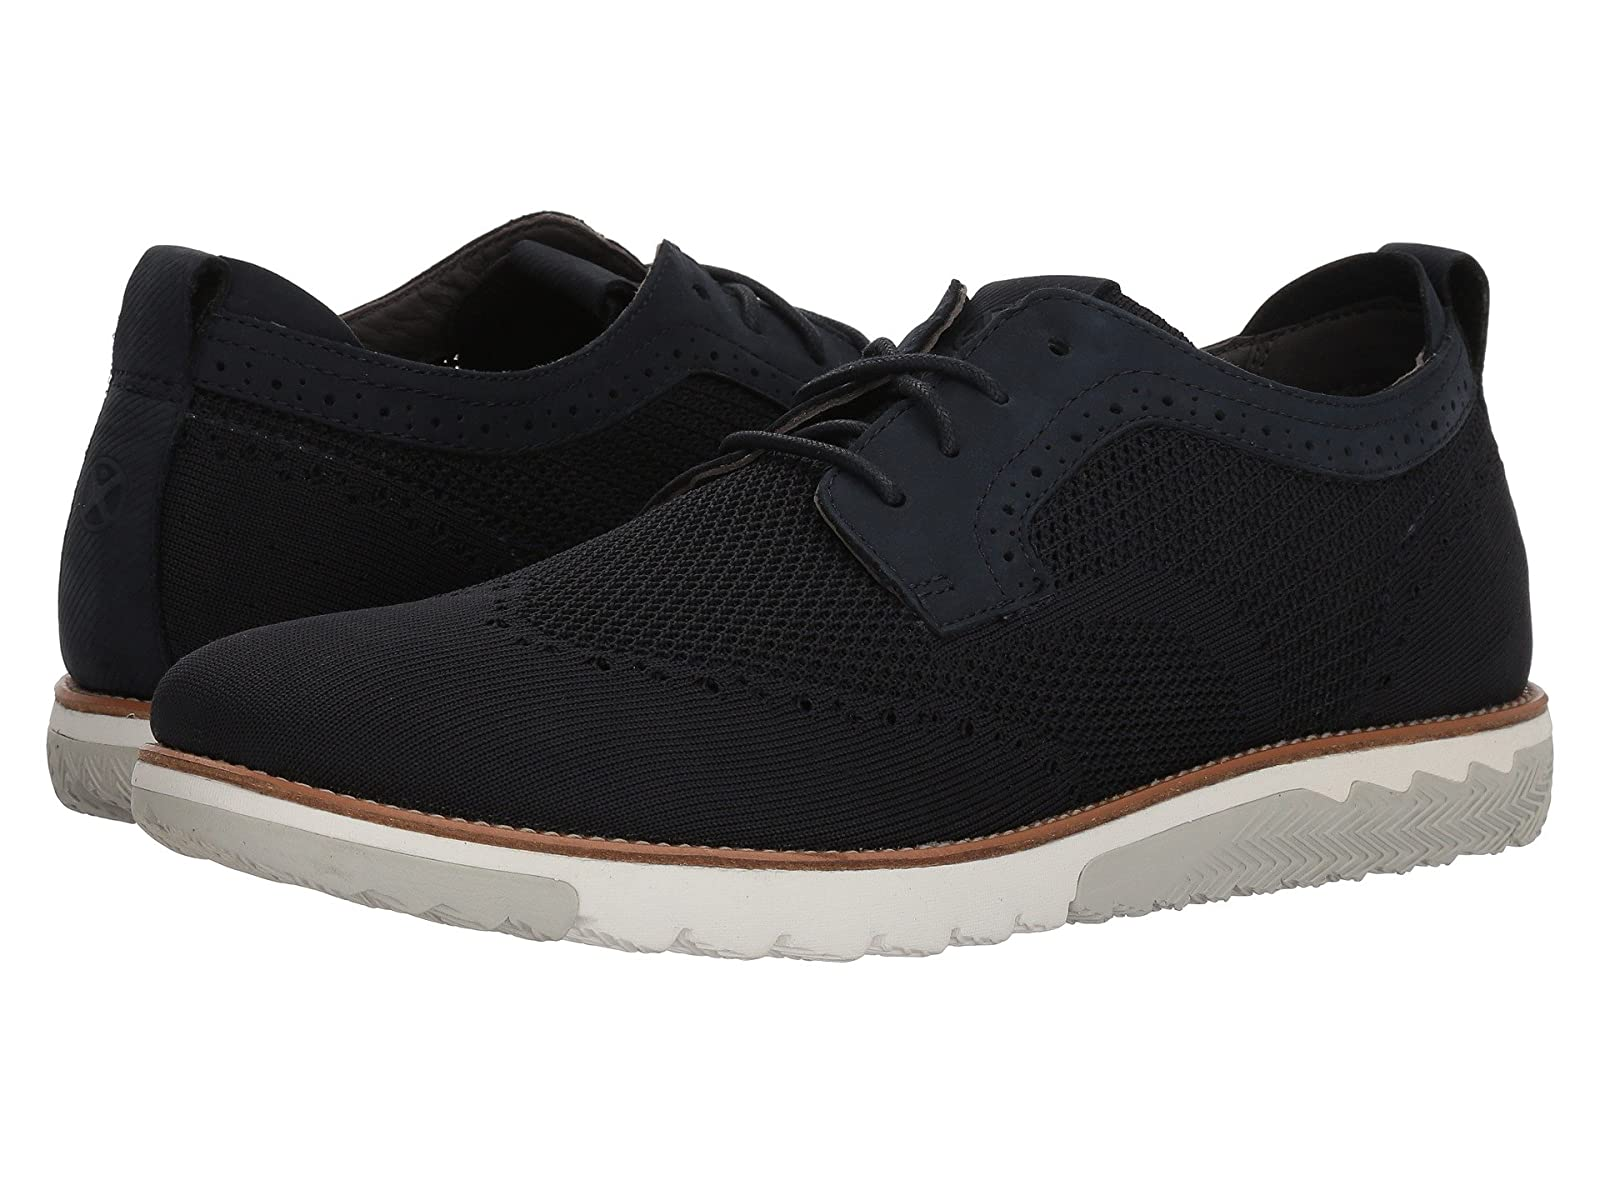 Hush Puppies Expert WT OxfordAtmospheric grades have affordable shoes